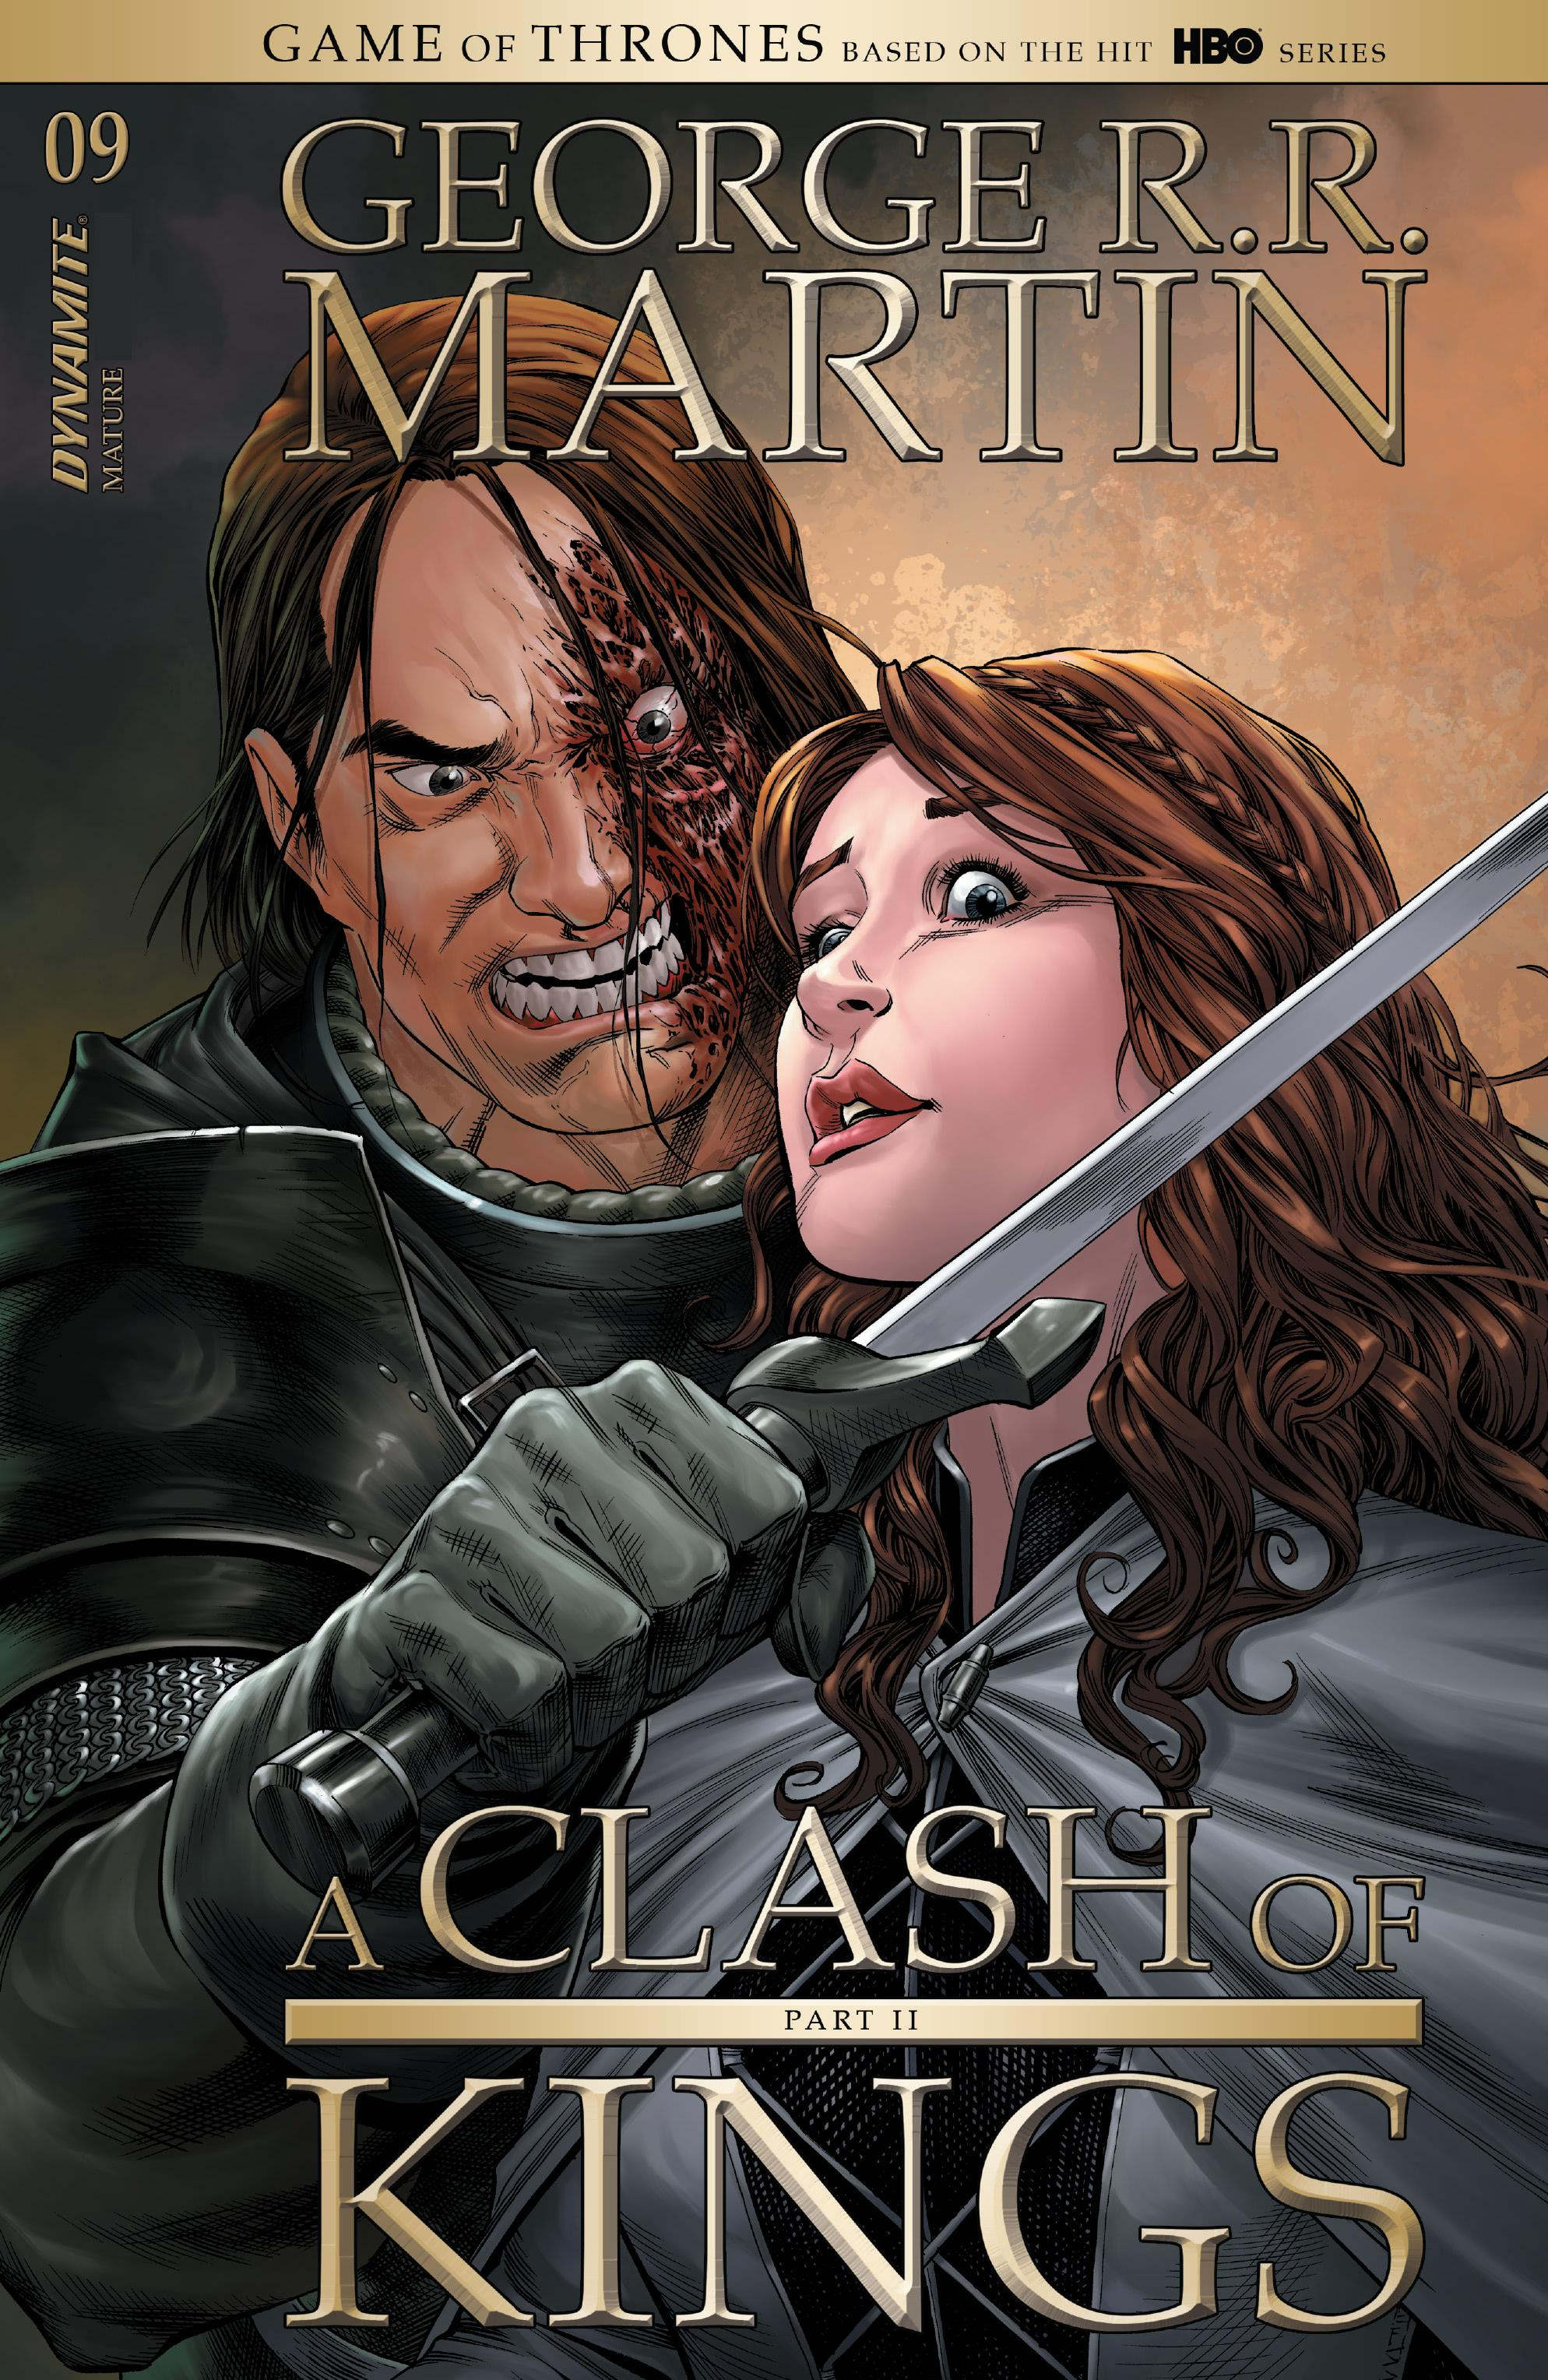 George R R Martin's A Clash of Kings 009 (2020) (2 covers) (digital) (Son of Ultron-Empire